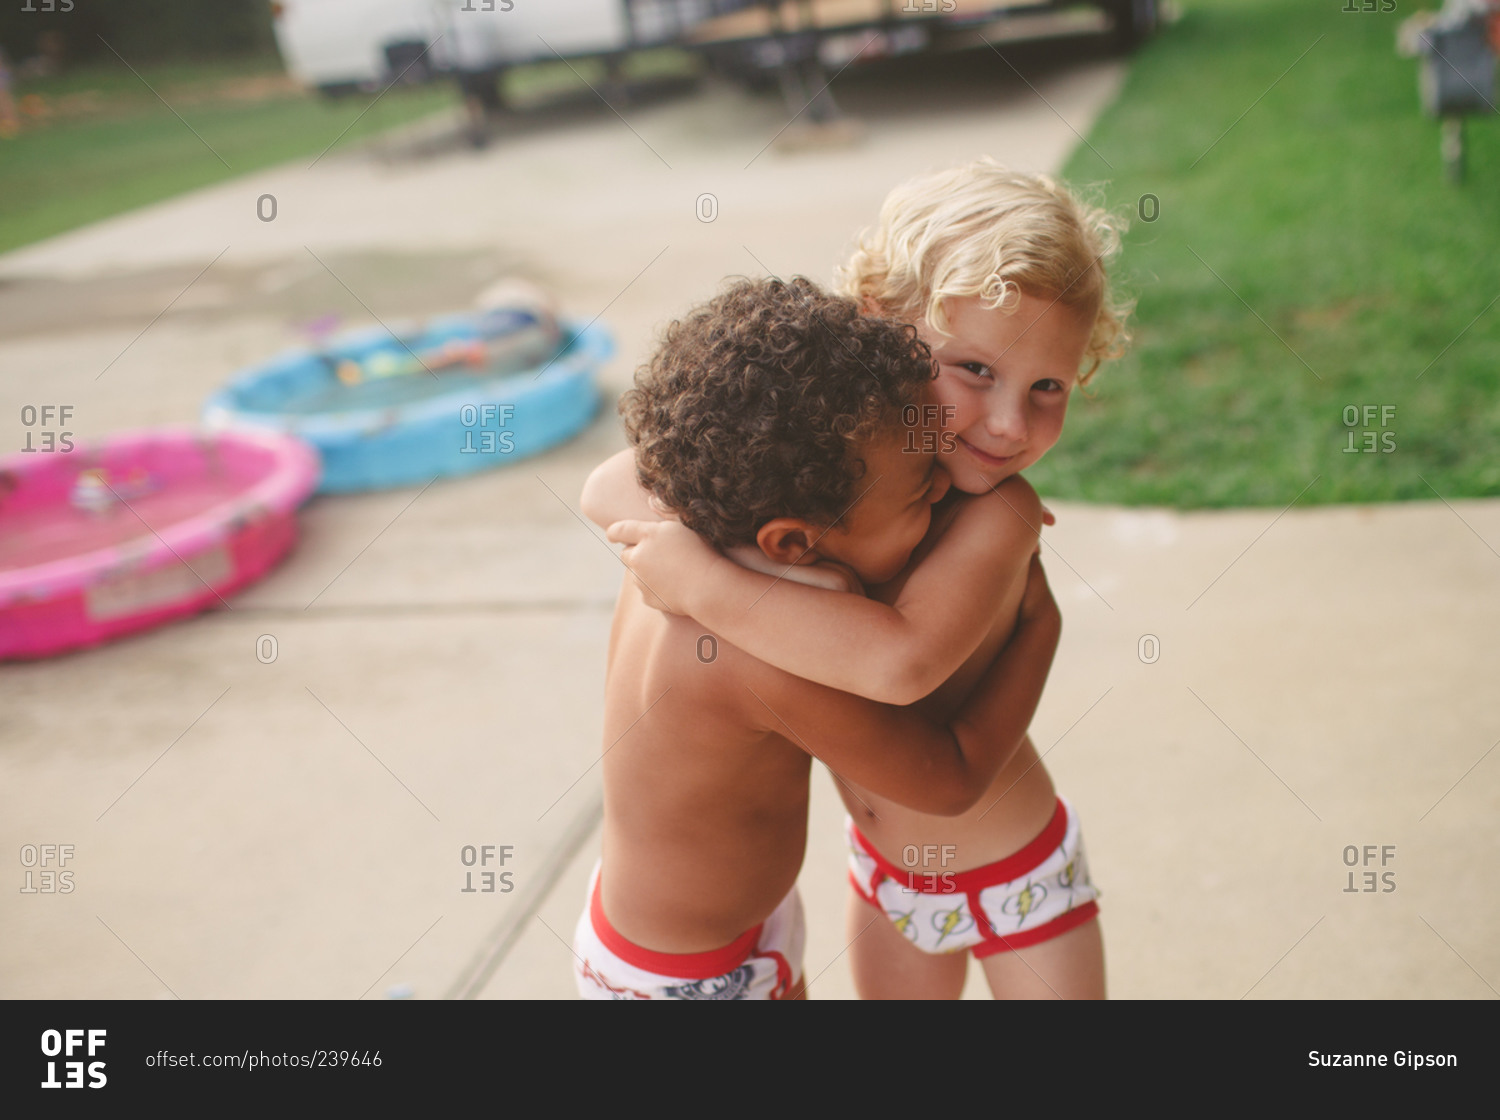 Boys in underwear playing on driveway stock photo - OFFSET